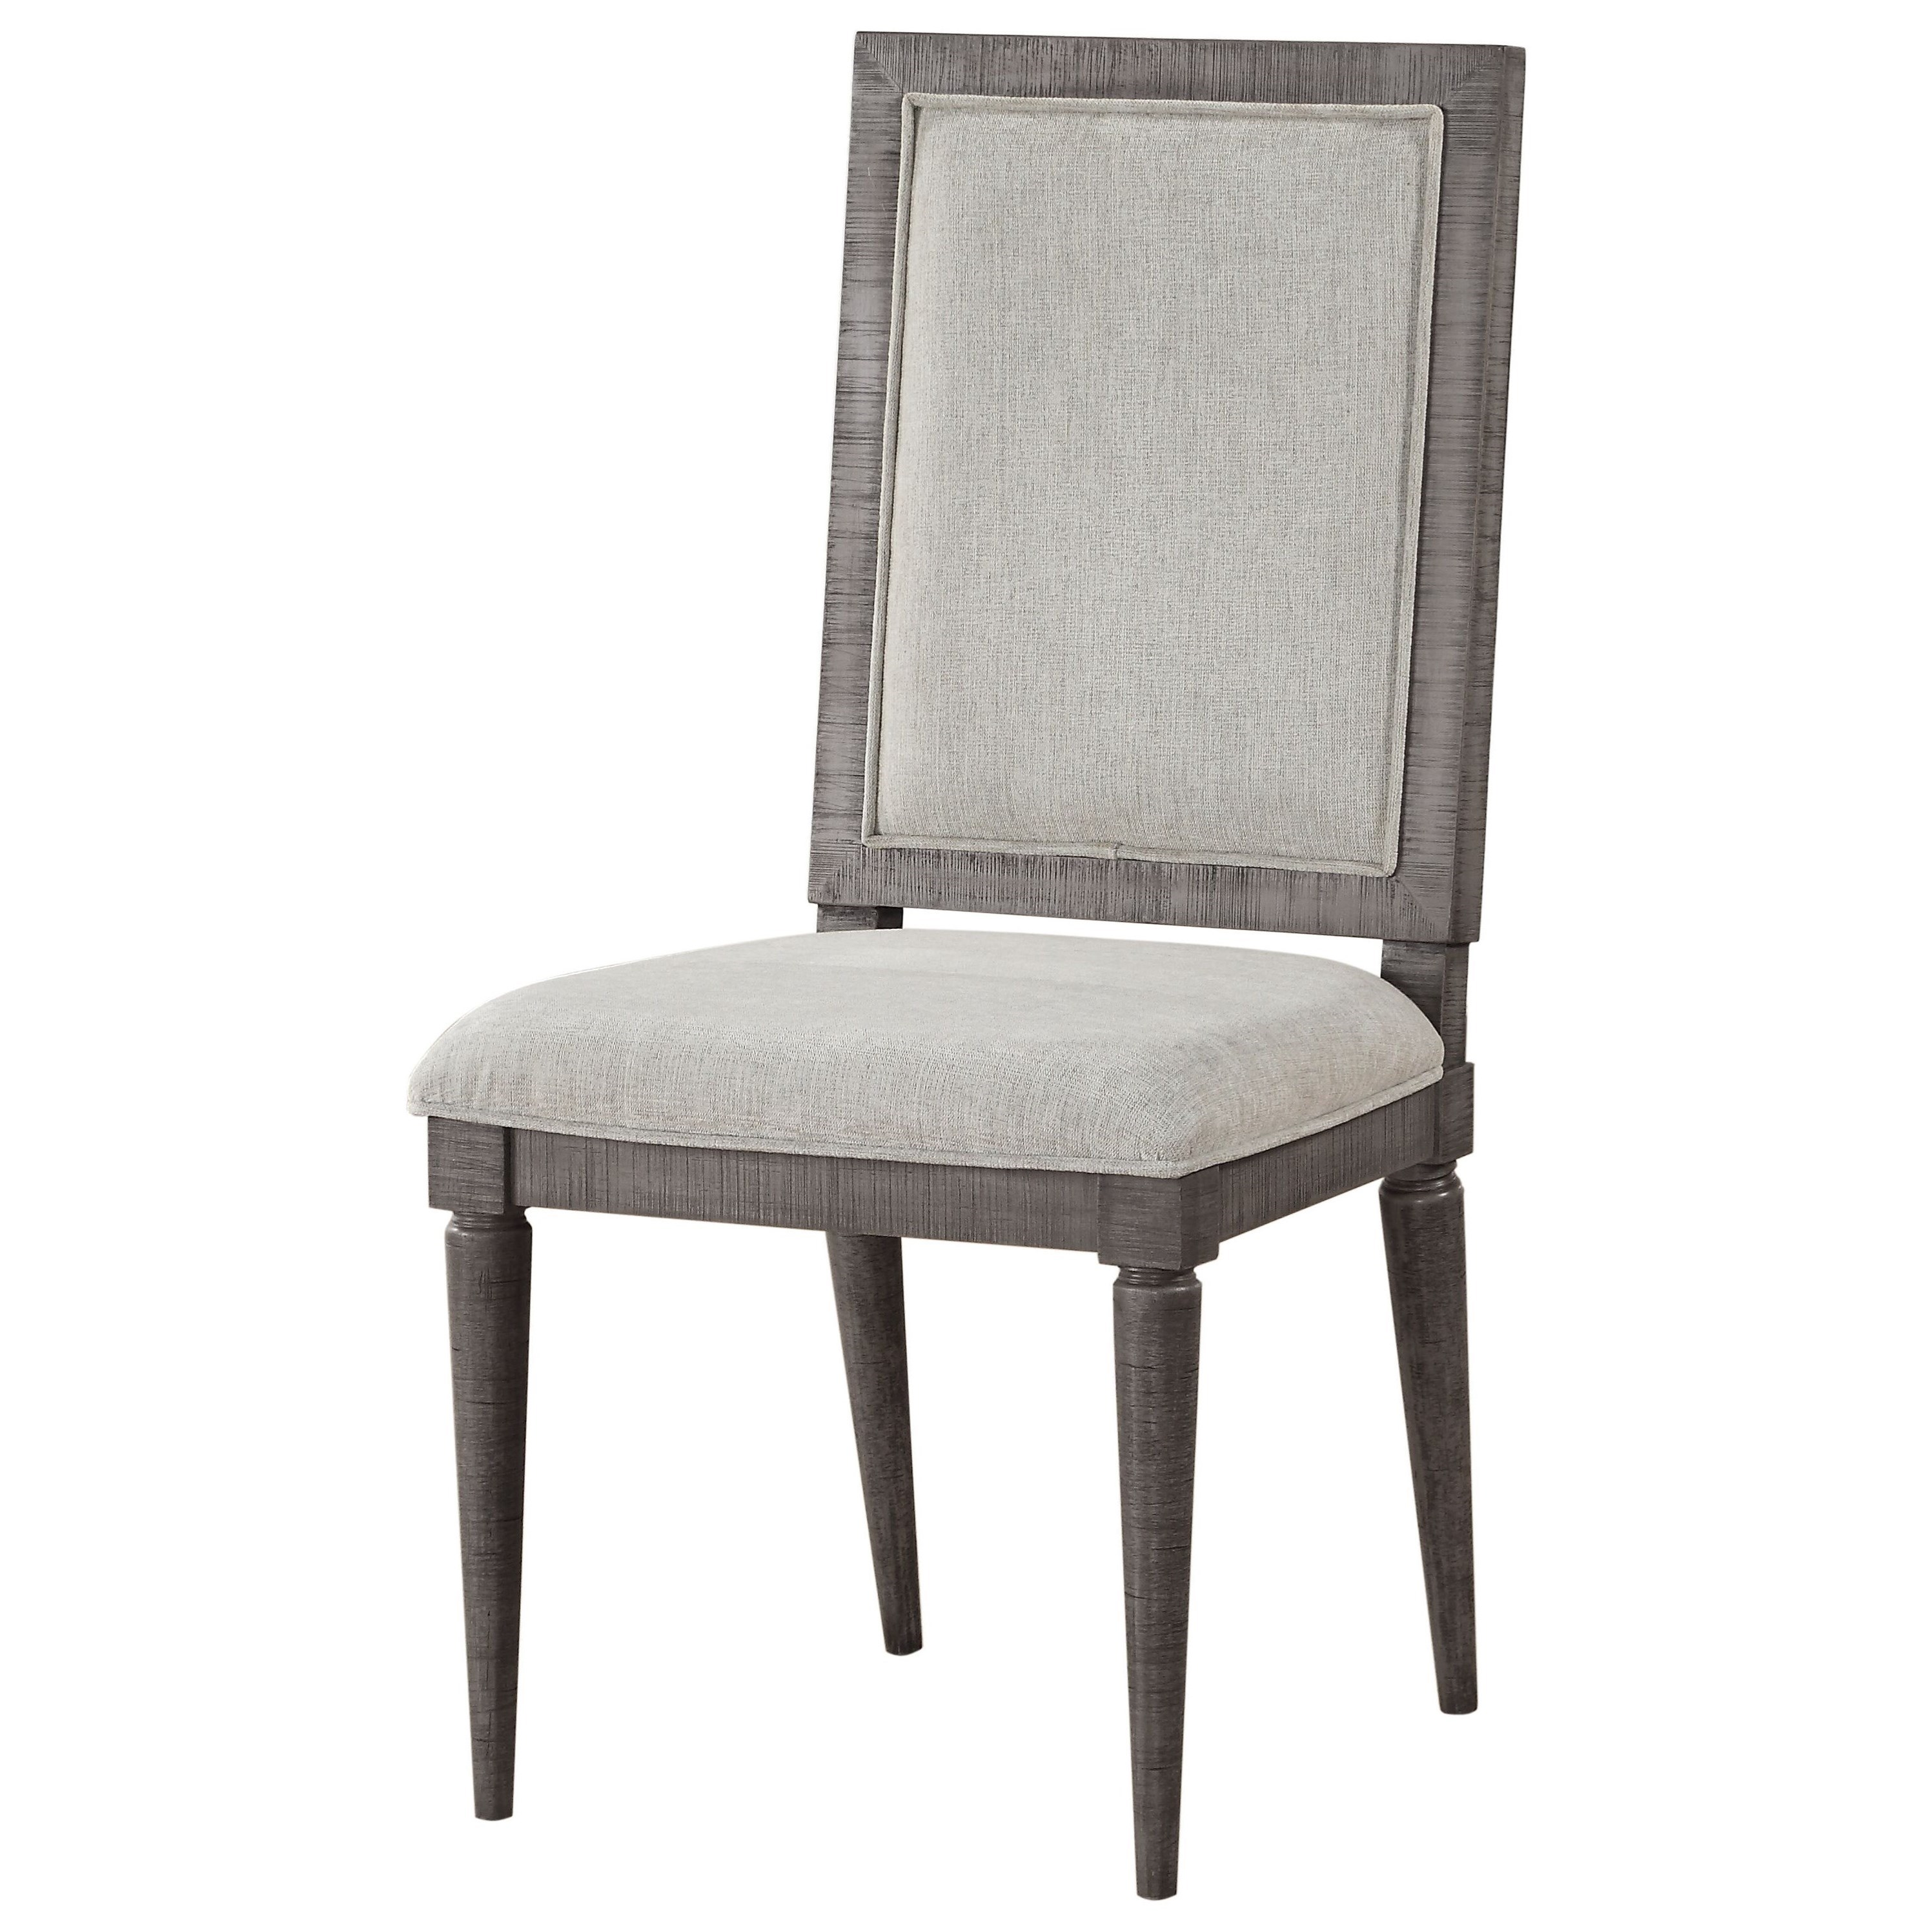 Artesia Side Chair by Acme Furniture at Carolina Direct